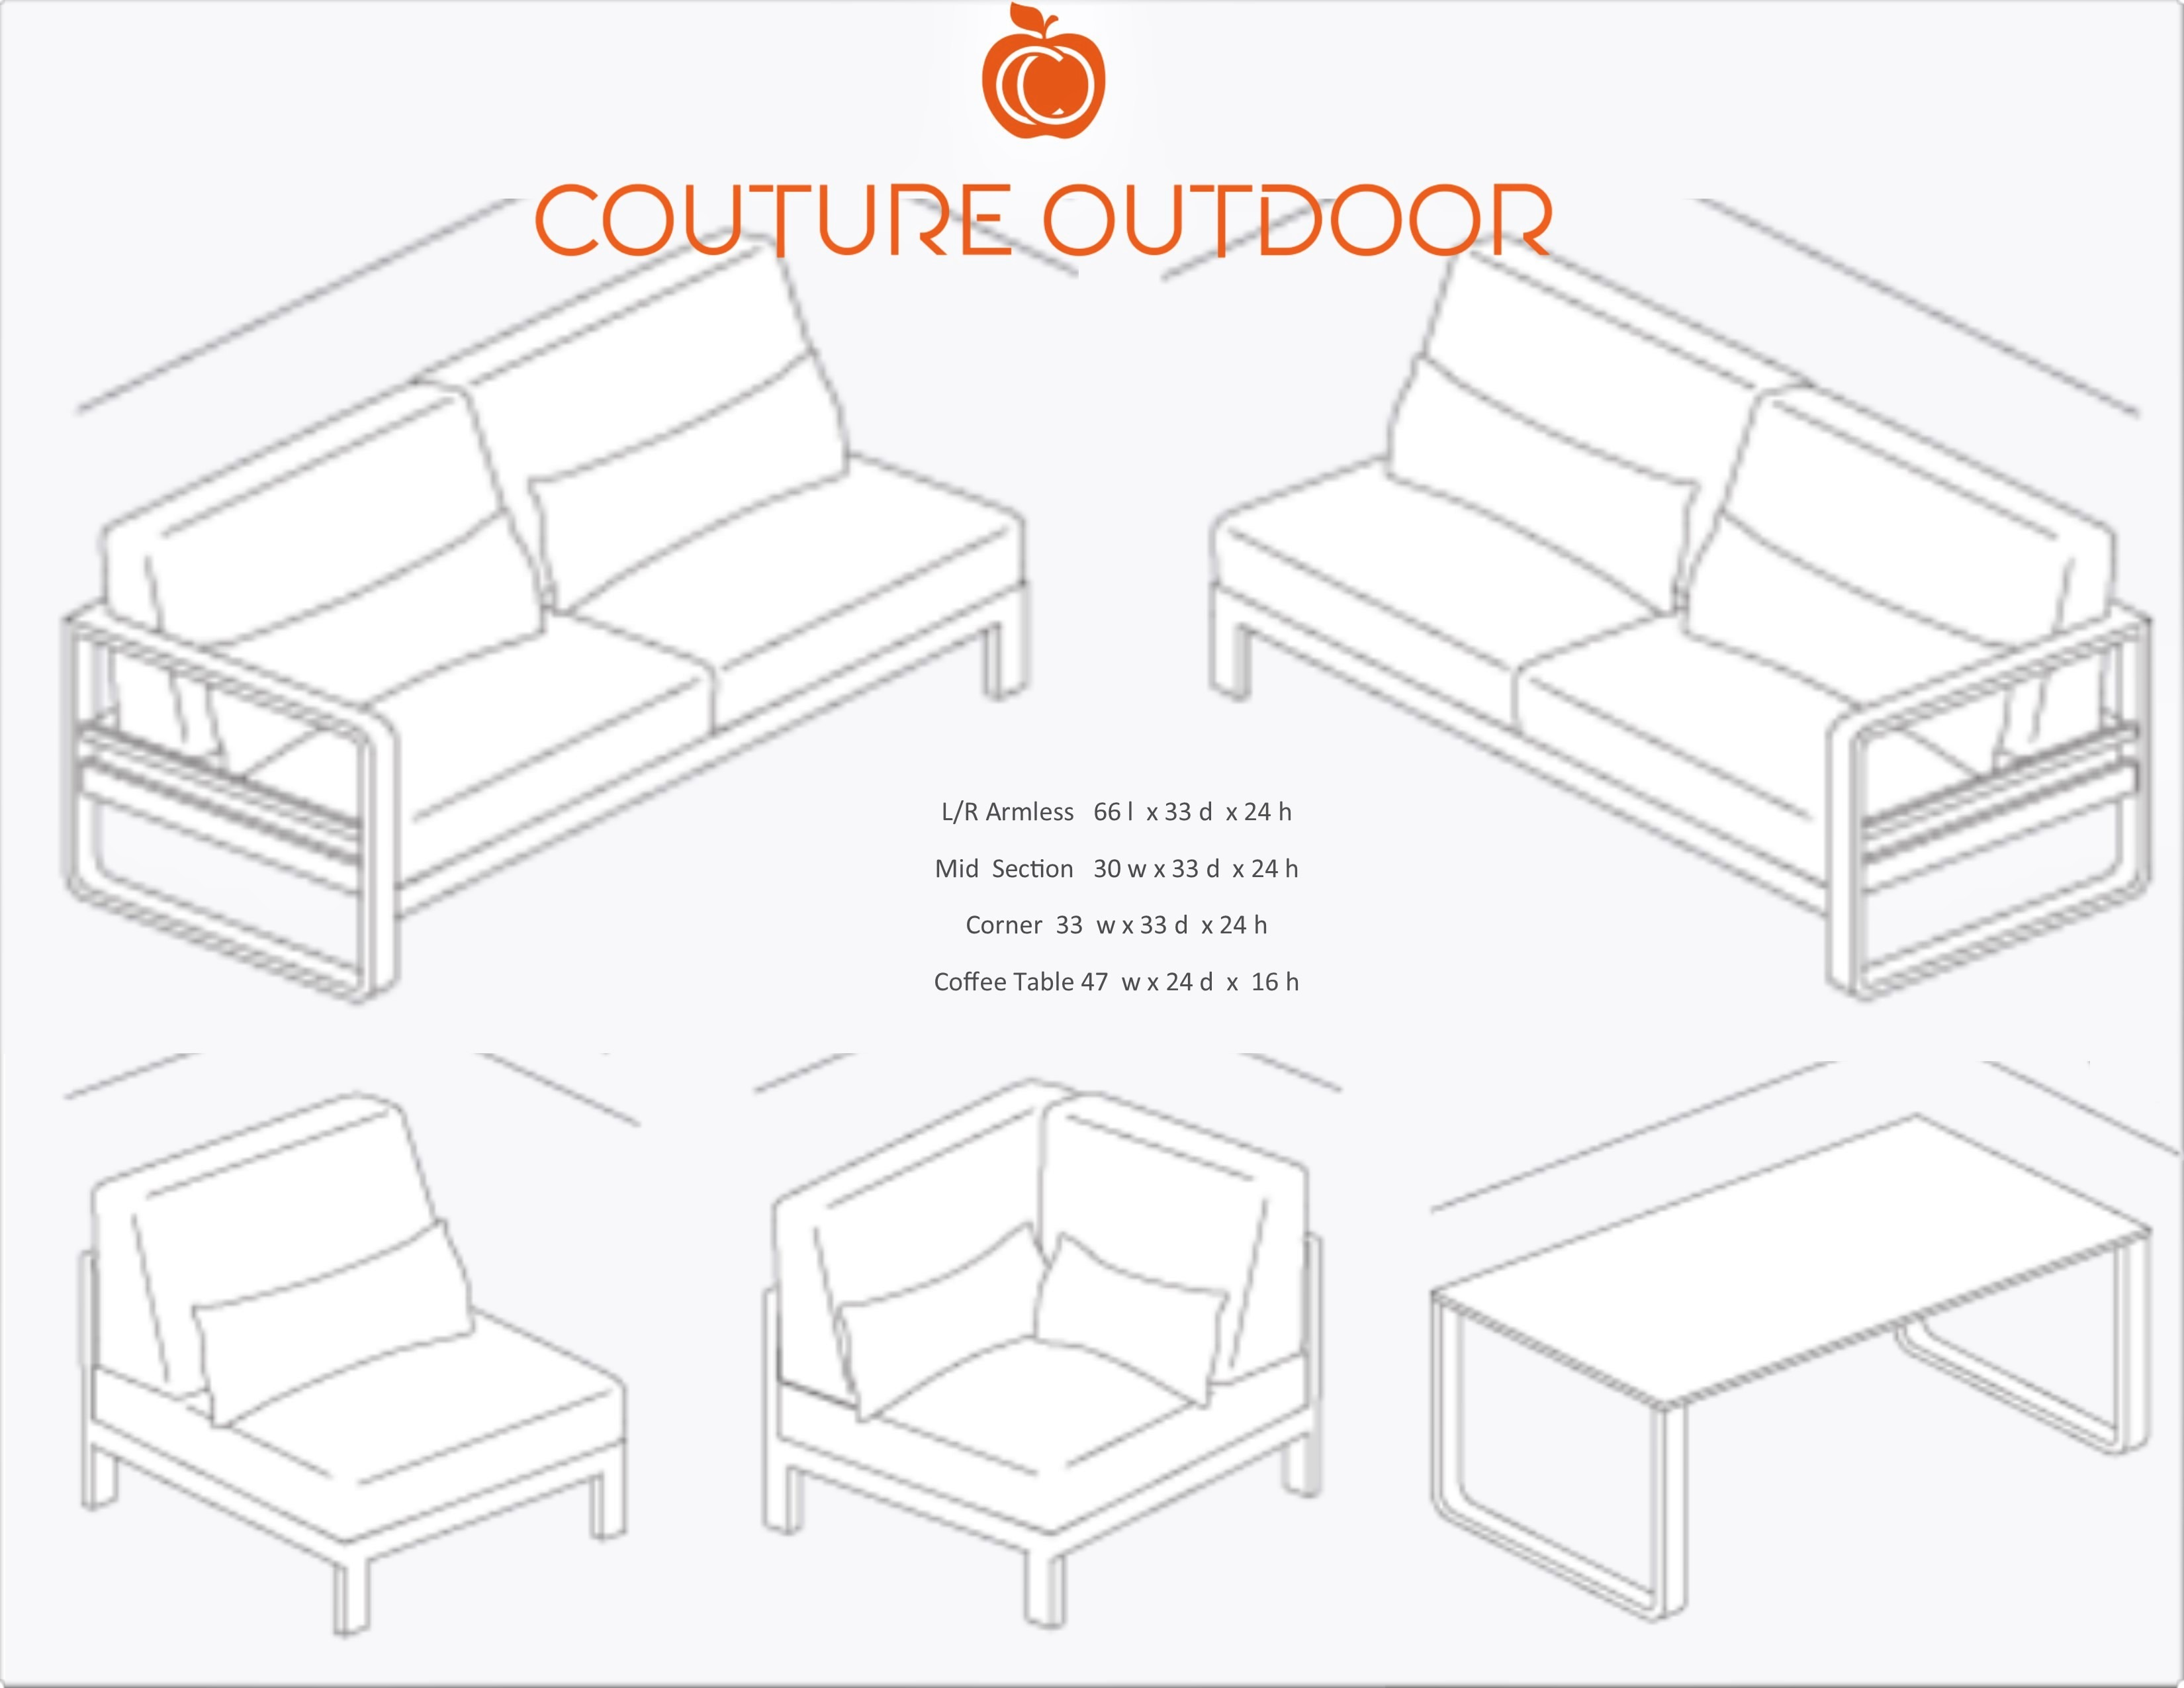 Pleasant Karma Modular Sectional Seating Sofa Metro Couture Outdoor Andrewgaddart Wooden Chair Designs For Living Room Andrewgaddartcom